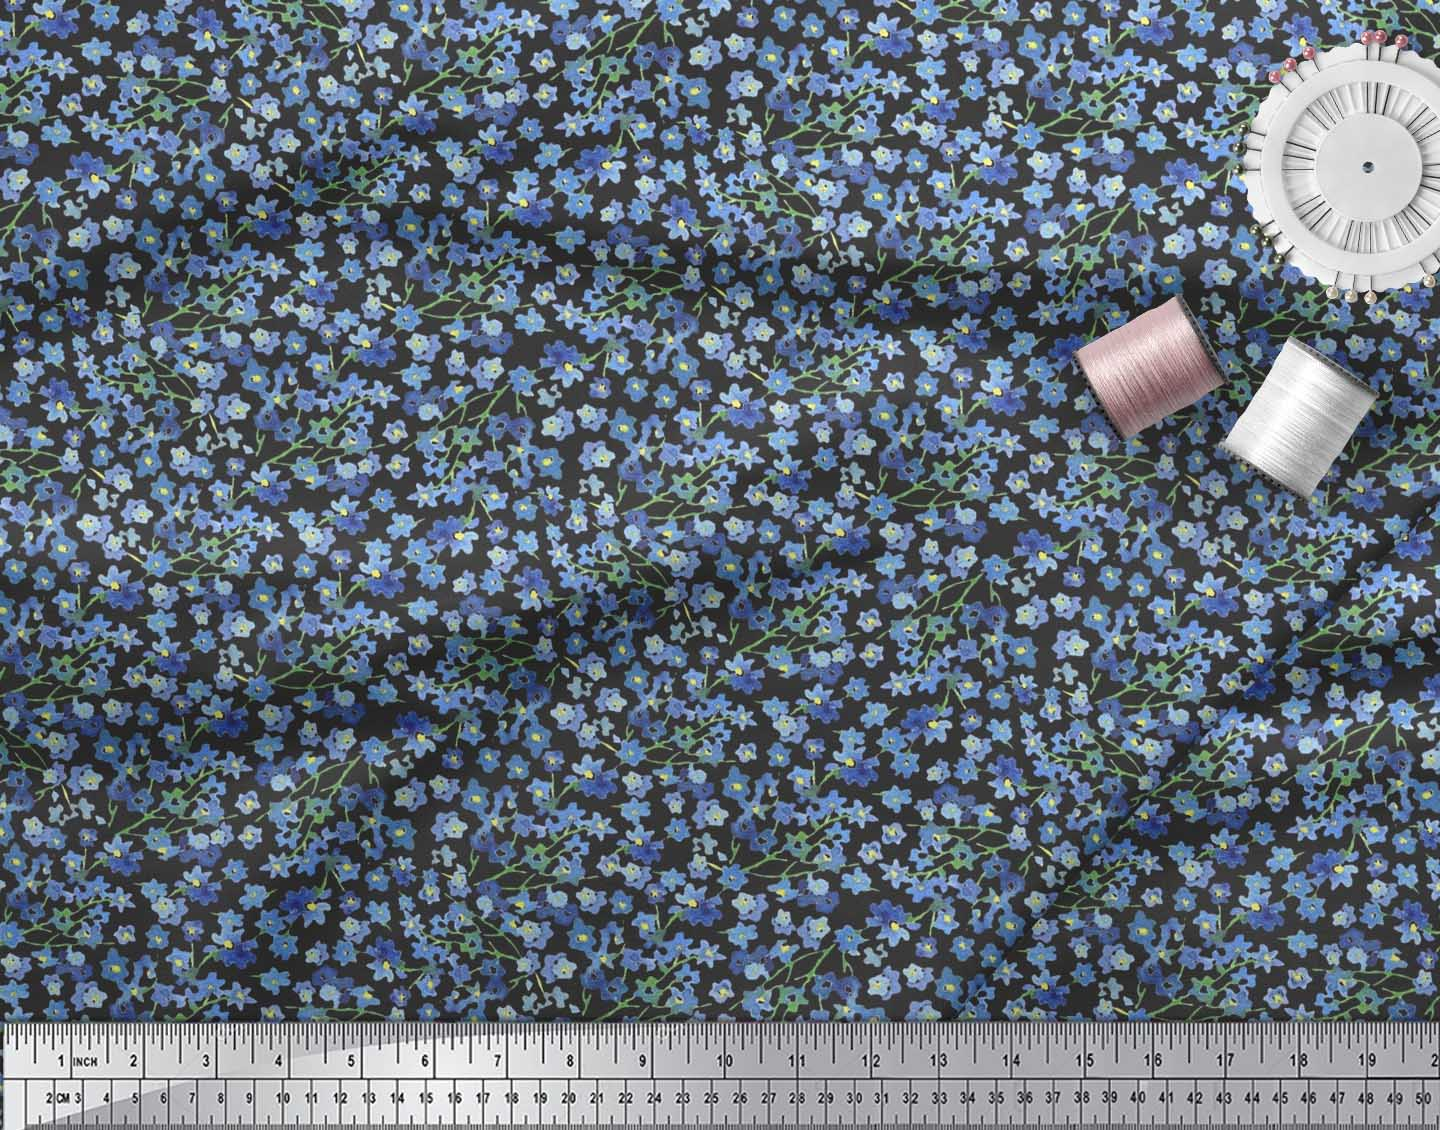 Soimoi-Black-Cotton-Poplin-Fabric-Flower-Watercolor-Print-Fabric-3lc thumbnail 3